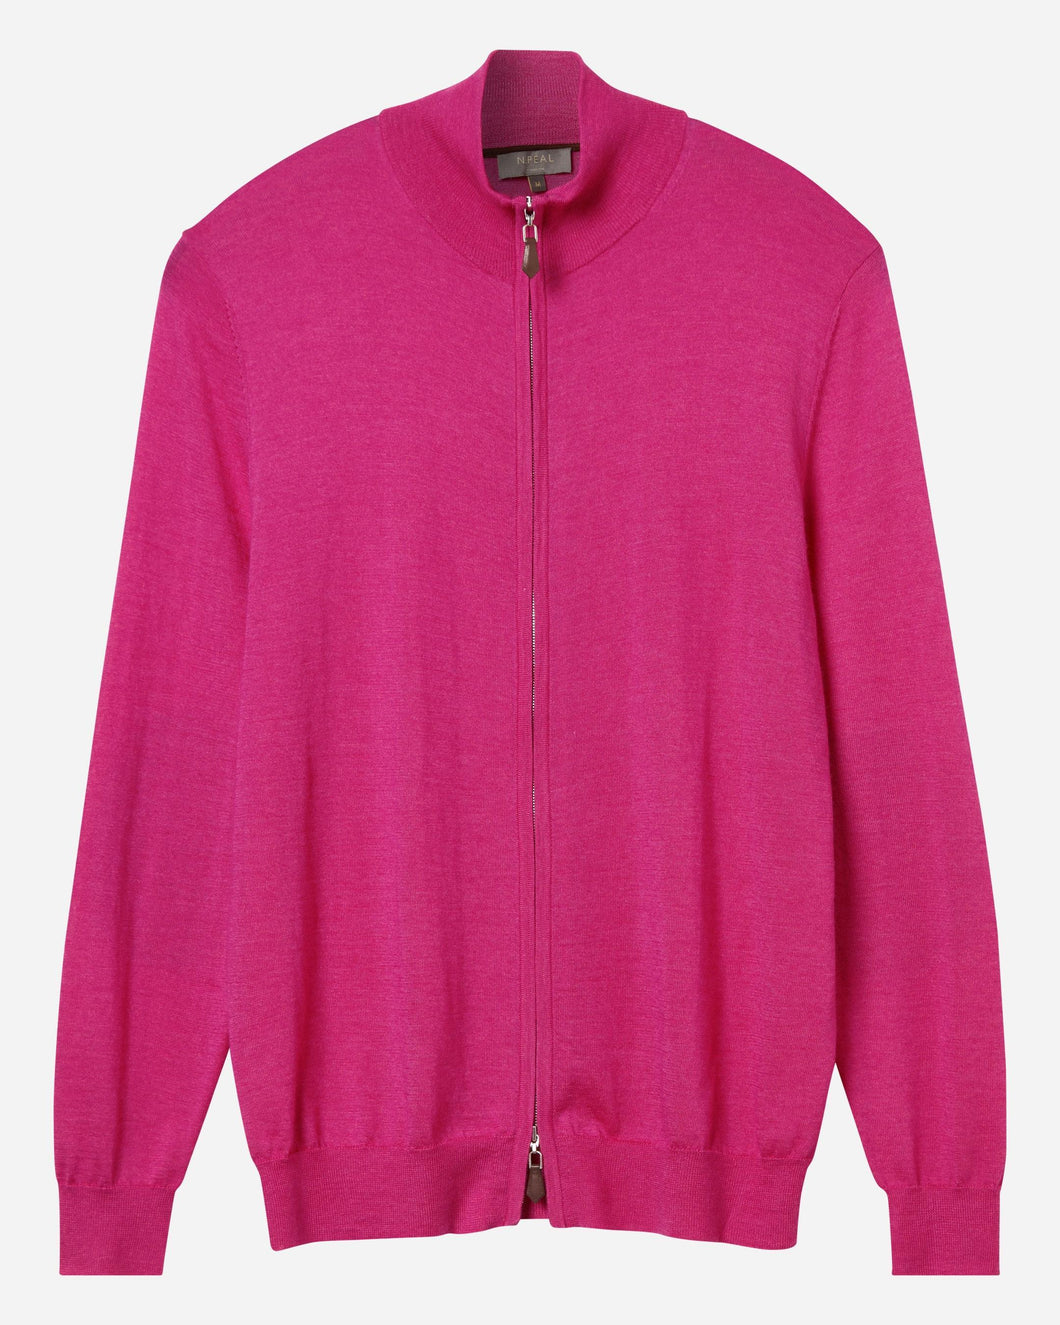 The Hyde Fine Gauge Zip Jumper Purple Pink